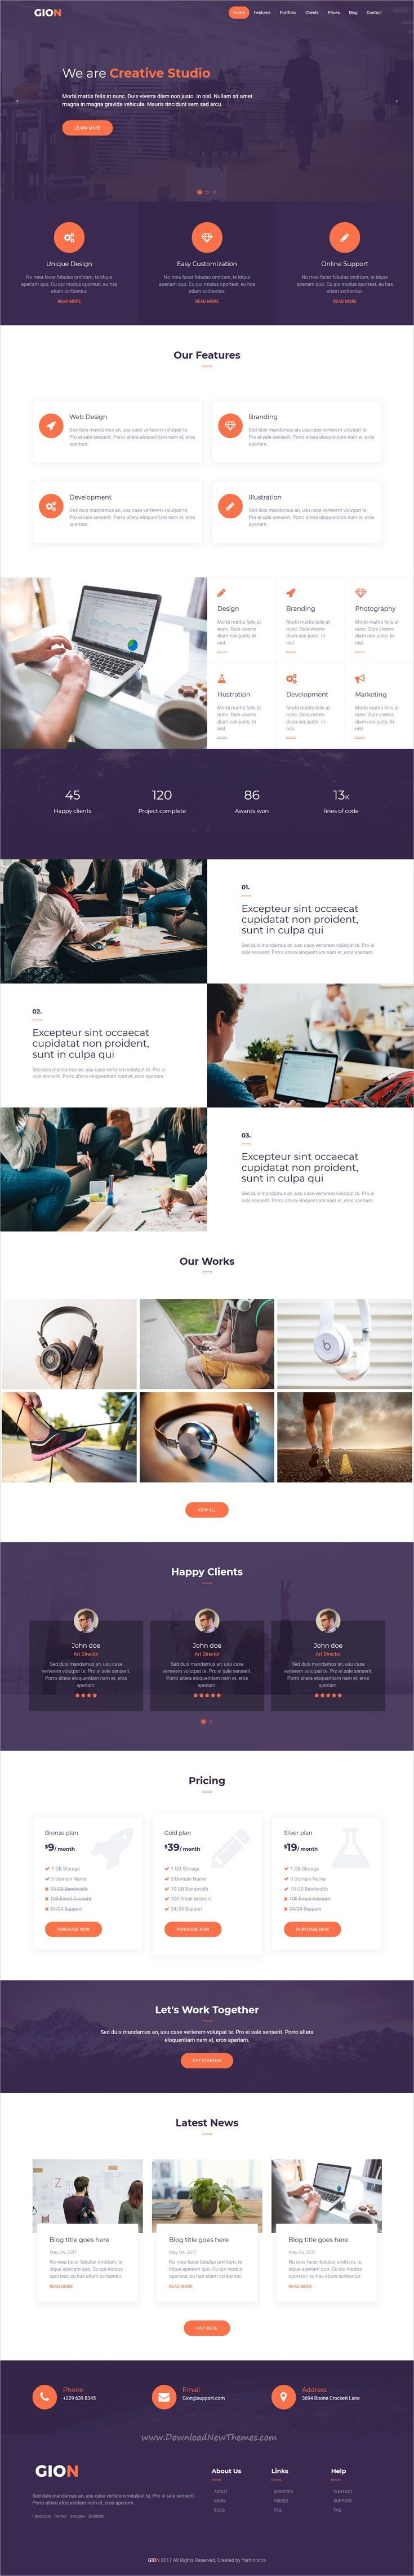 Gion is clean and modern design responsive #bootstrap template for onepage #business agencies website download now.. #ResponsiveWebDesign